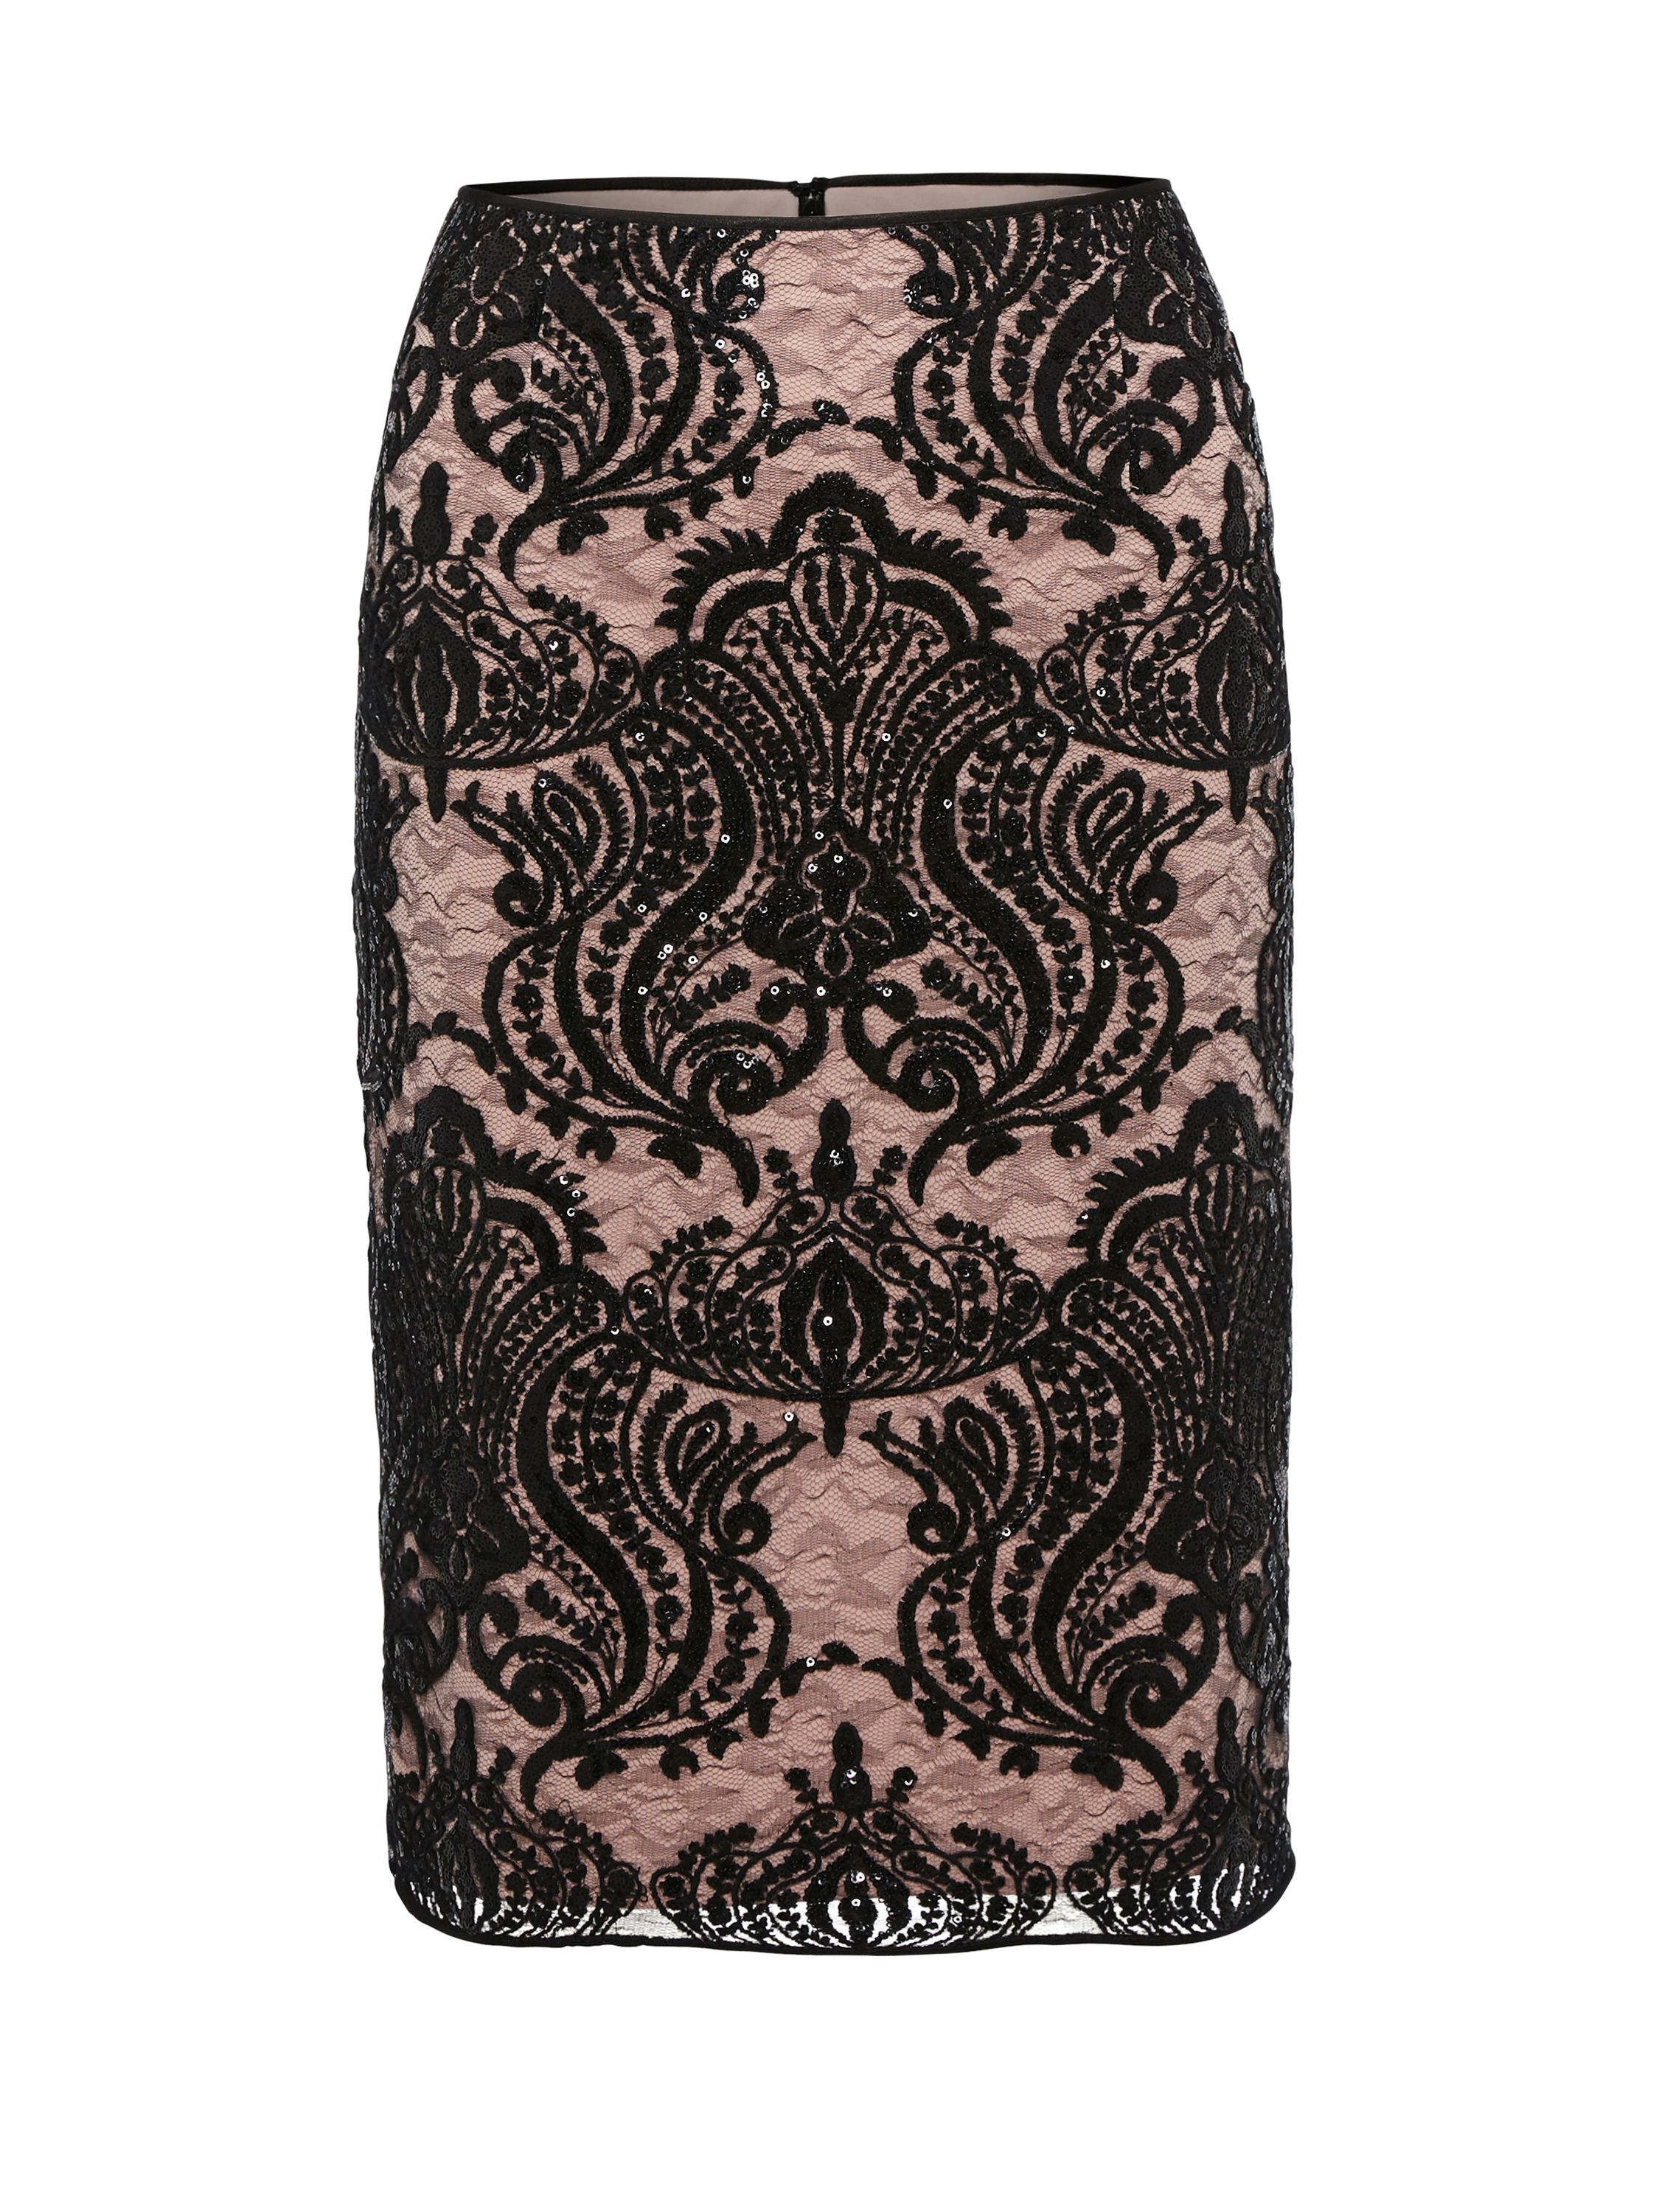 Gina Bacconi Baroque Sequin Mesh Lined Skirt, Black